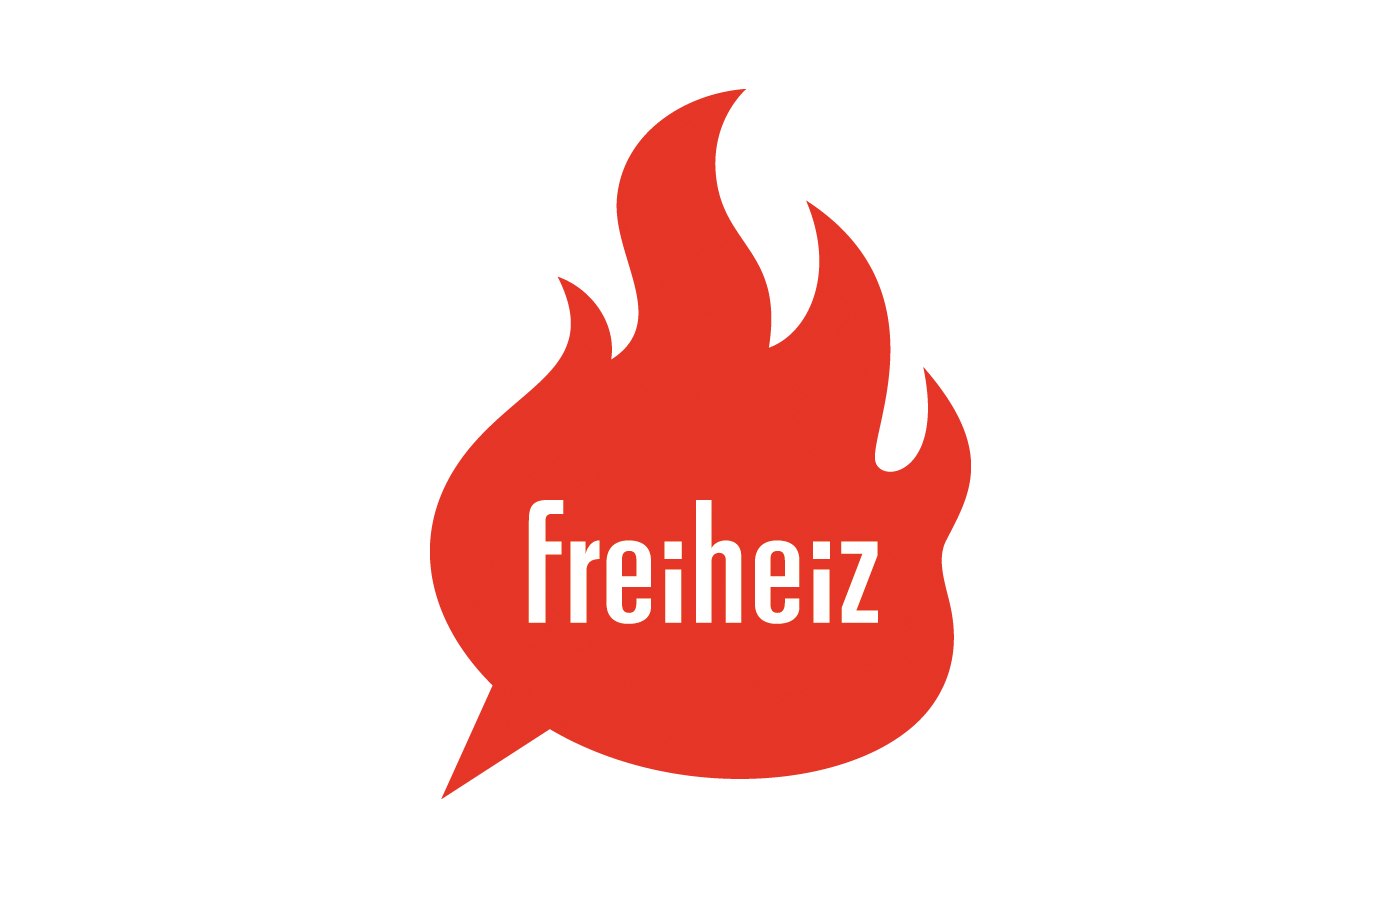 DR_CorporateDesign_freiheiz_logo_2008